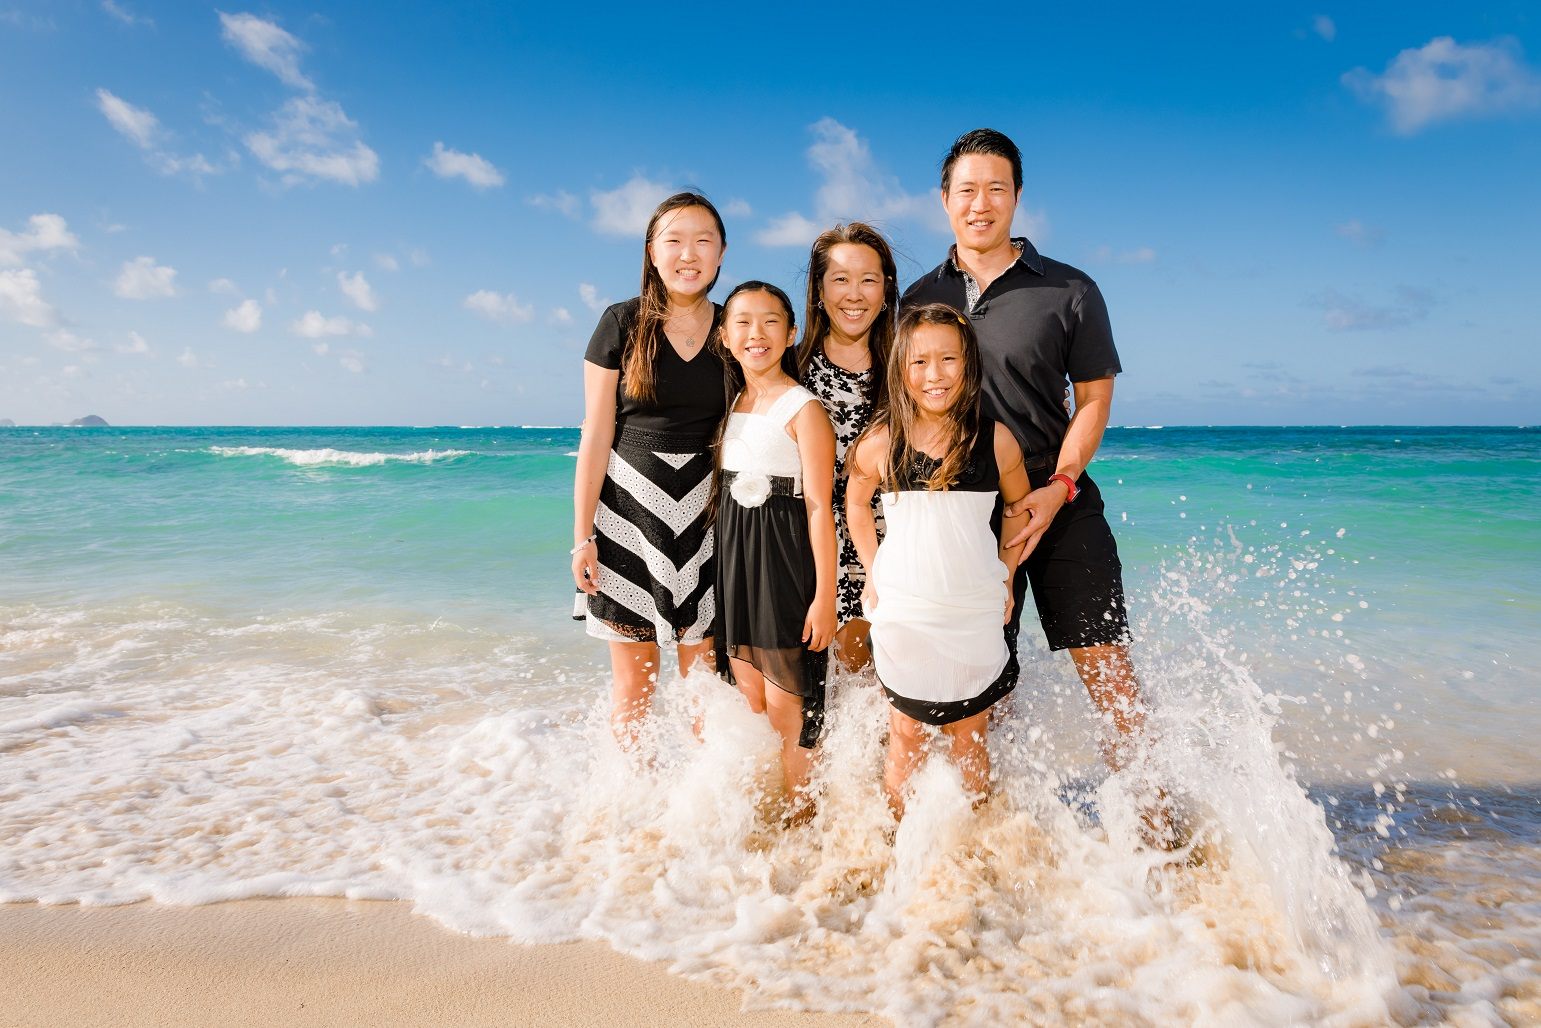 family portrati on beach in oahu hawaii surf waves